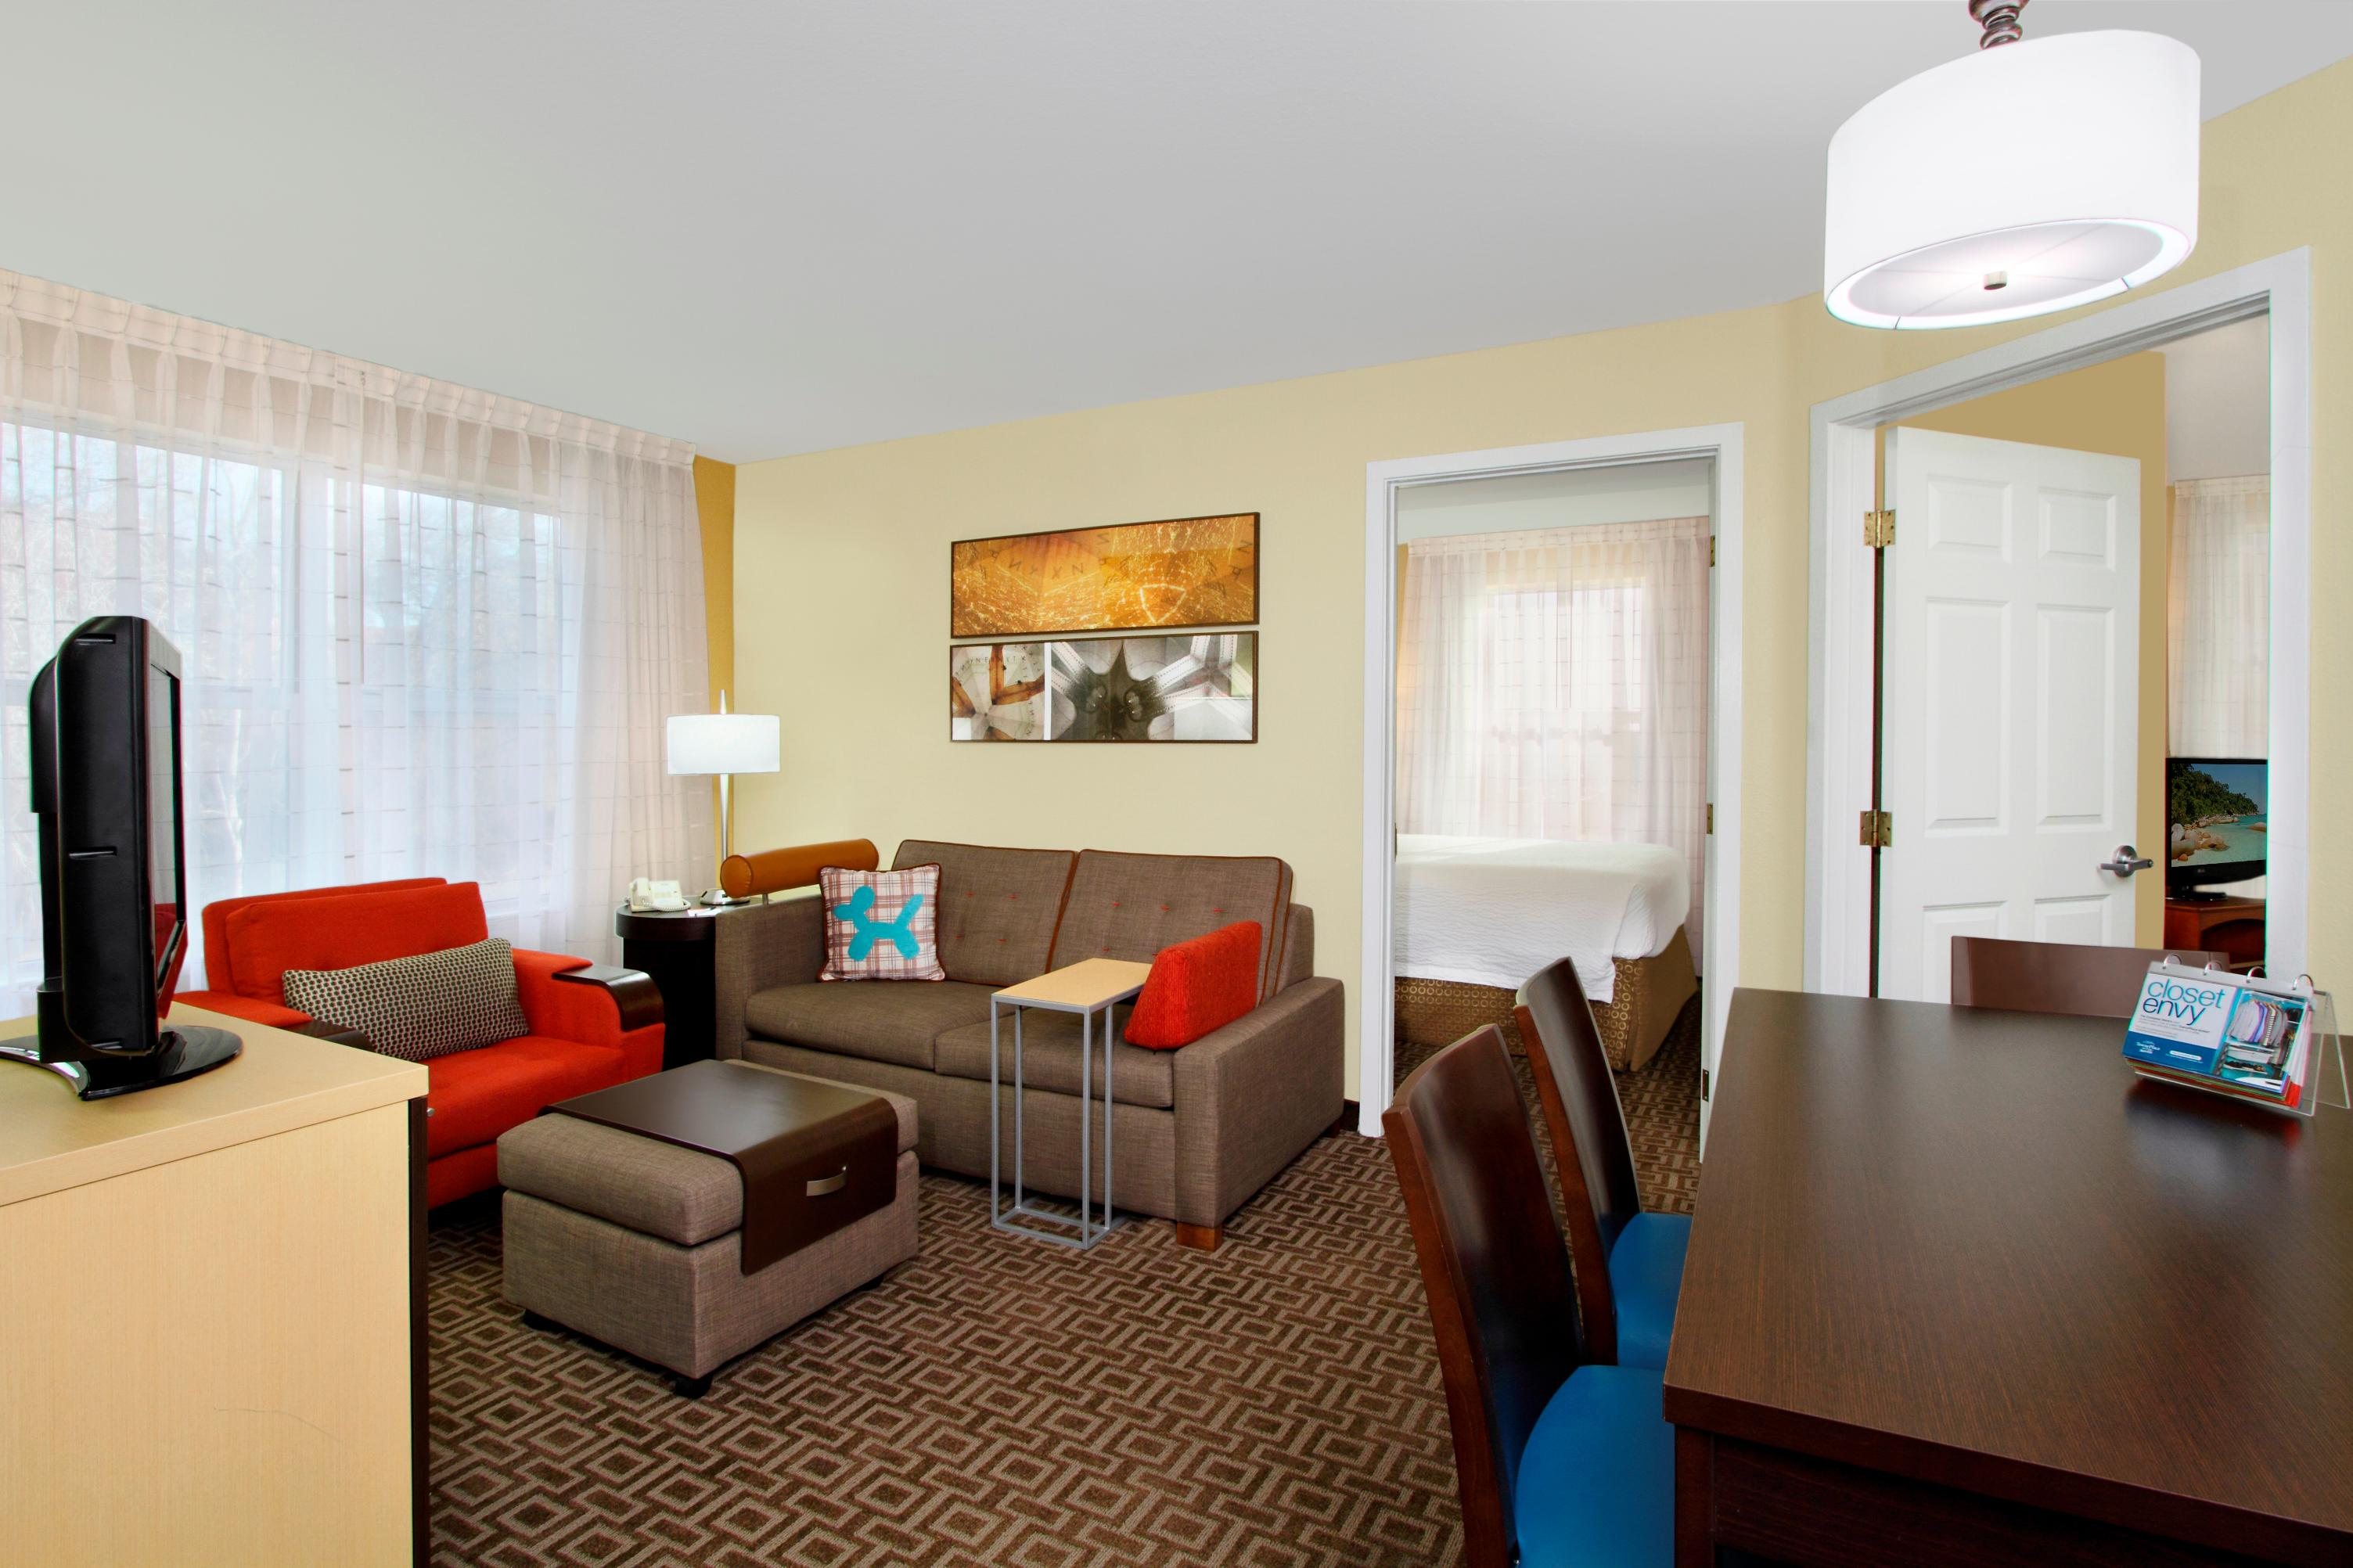 TownePlace Suites by Marriott Newark Silicon Valley image 1